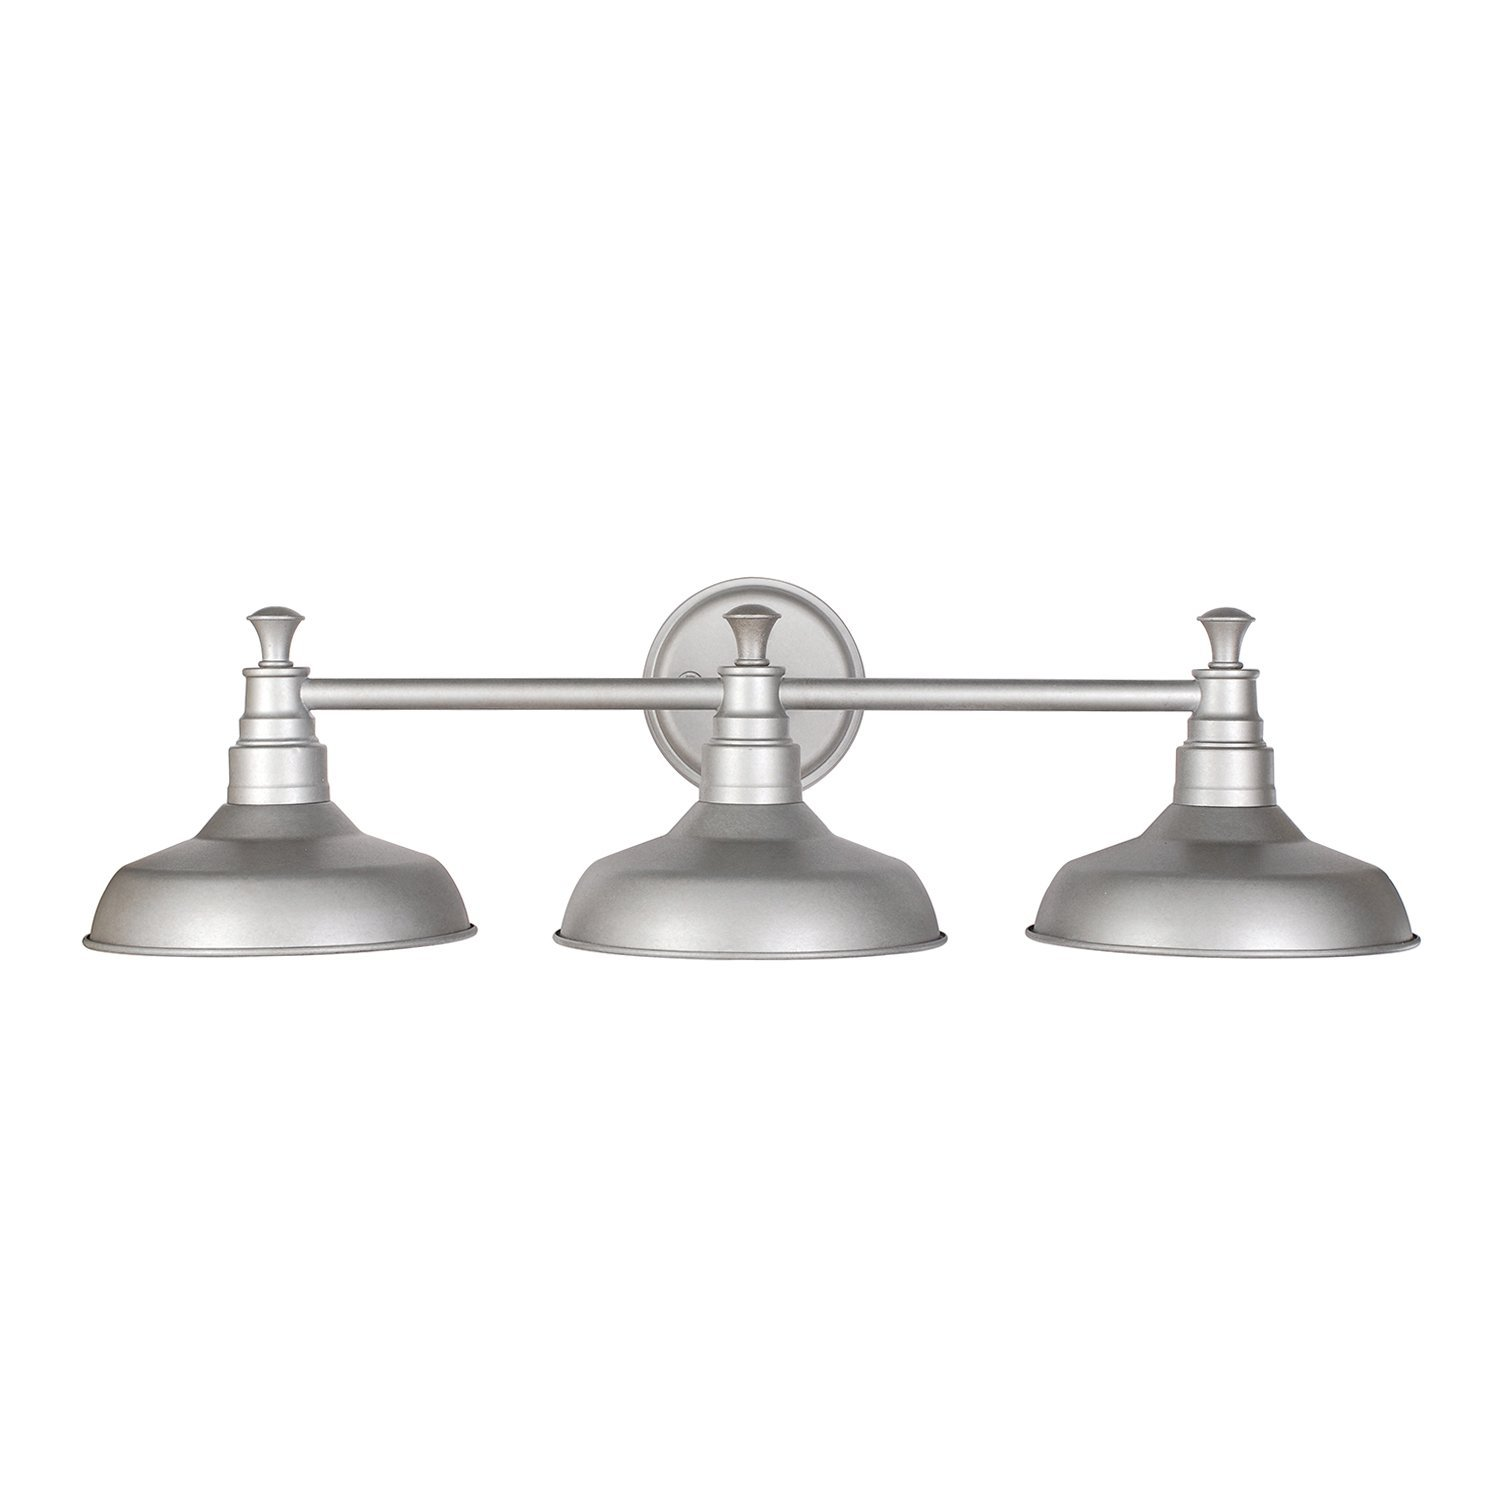 Design House Kimball 3-Light Bathroom Vanity Light, Galvanized Steel Finish - 520312